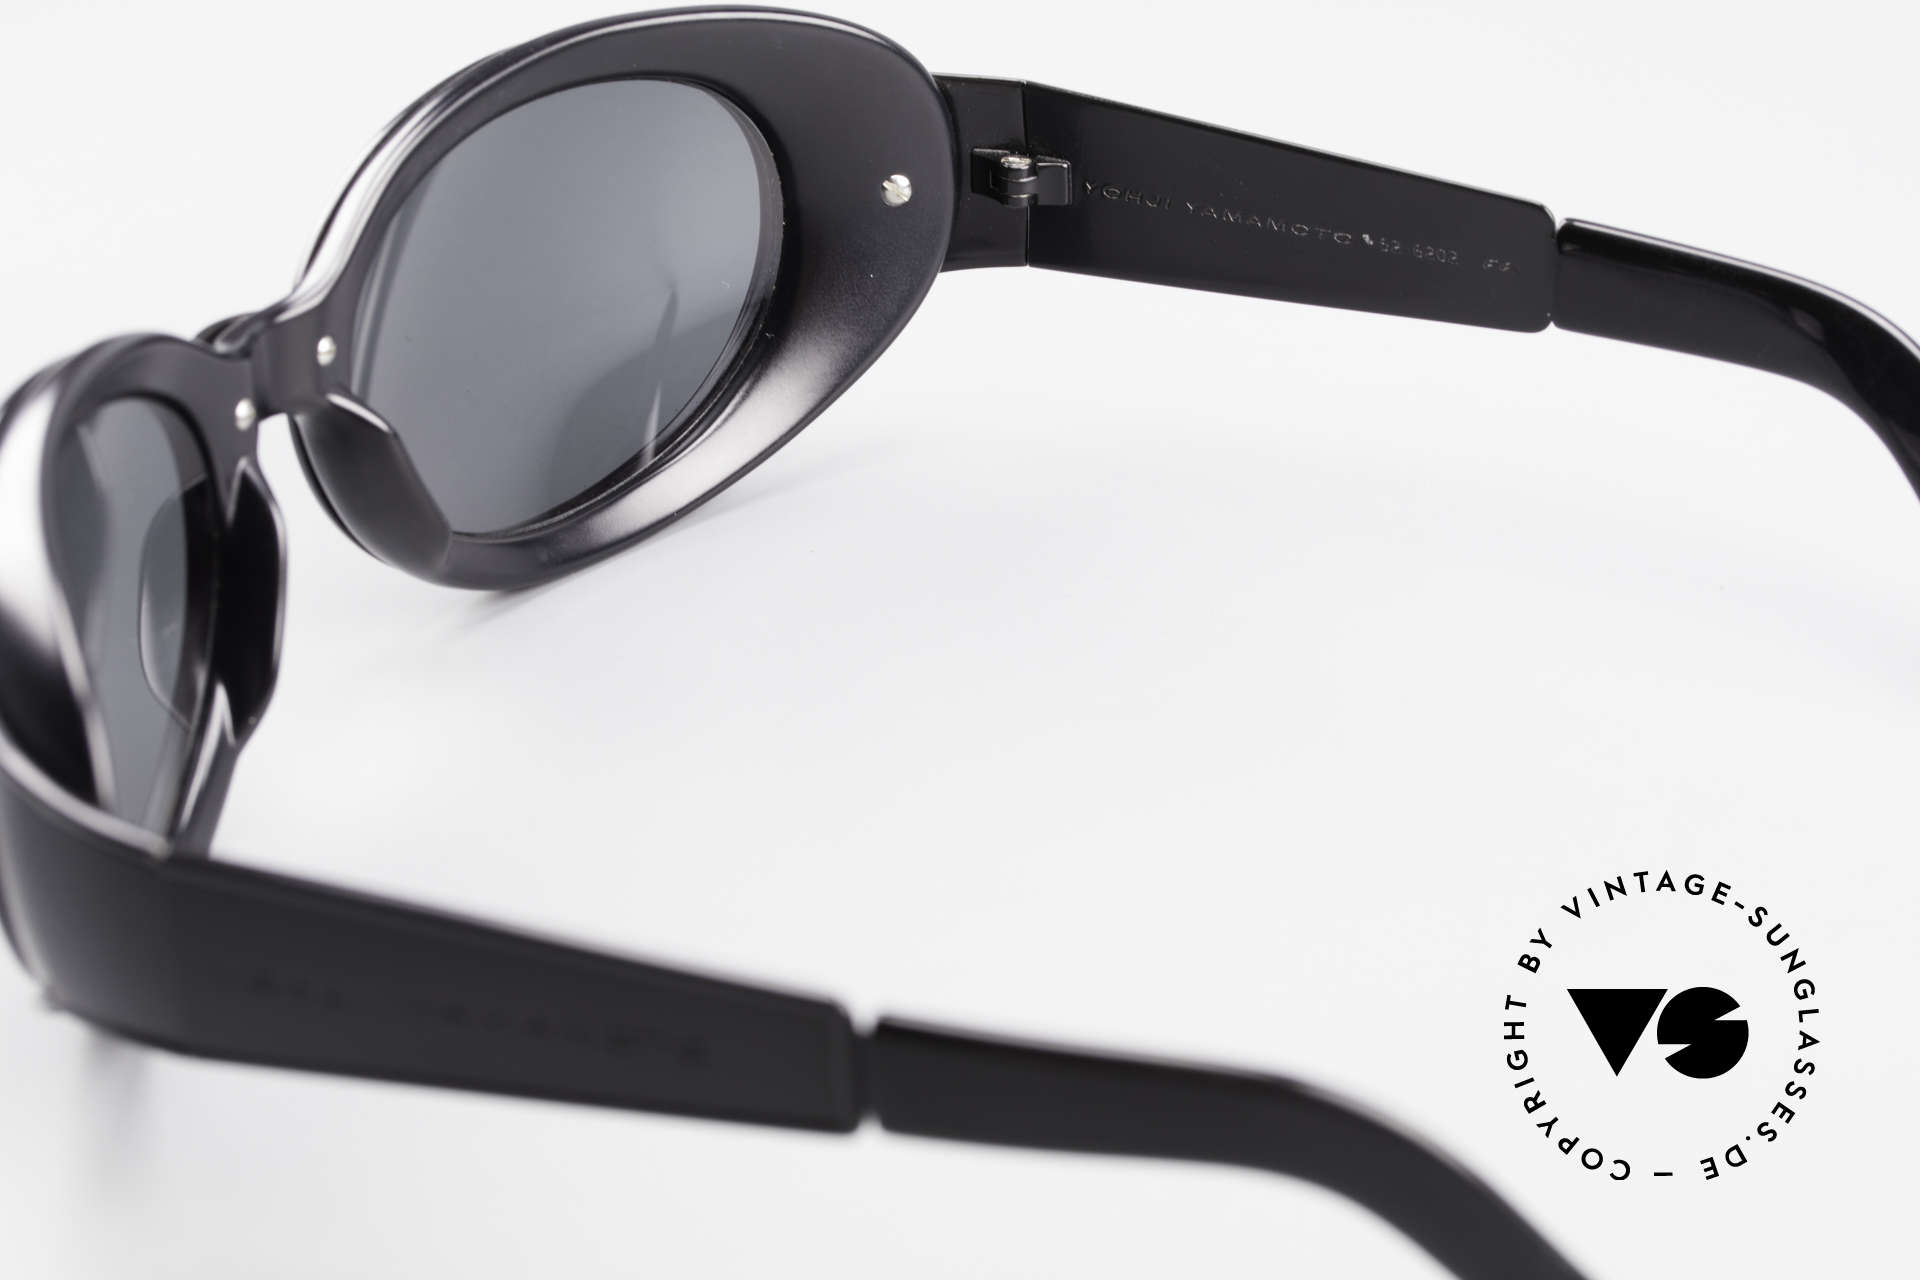 Yohji Yamamoto 52-6202 Sporty XL Designer Sunglasses, a true eye-catcher, made in Japan, X-LARGE size (149mm), Made for Men and Women